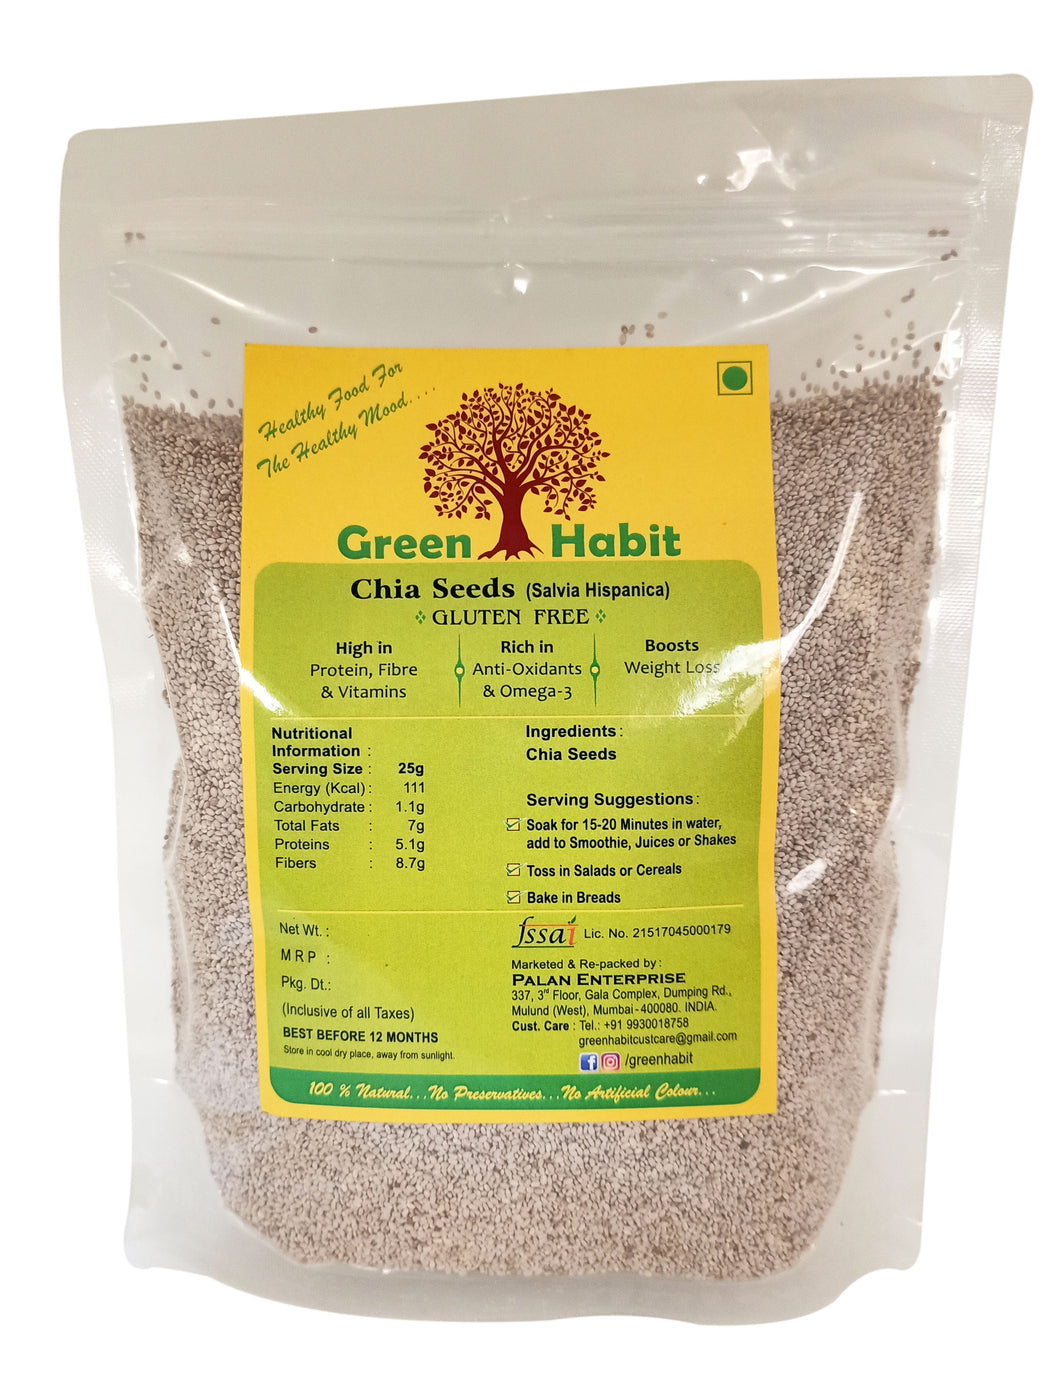 GreenHabit Healthy & Nutritious Super Food White Chia Seeds (Salvia Hispanica)